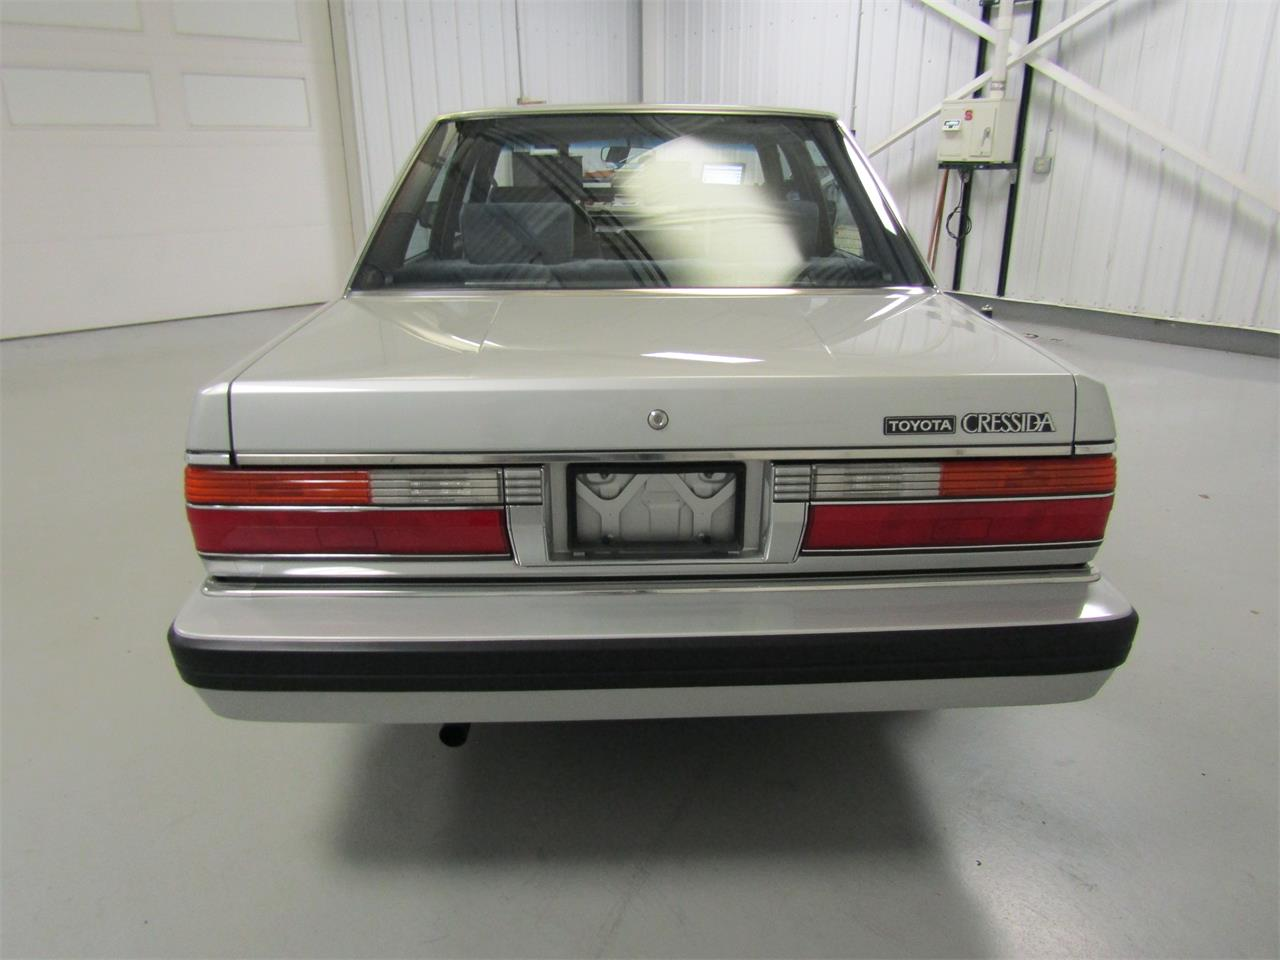 1985 Toyota Cressida for sale in Christiansburg, VA – photo 8